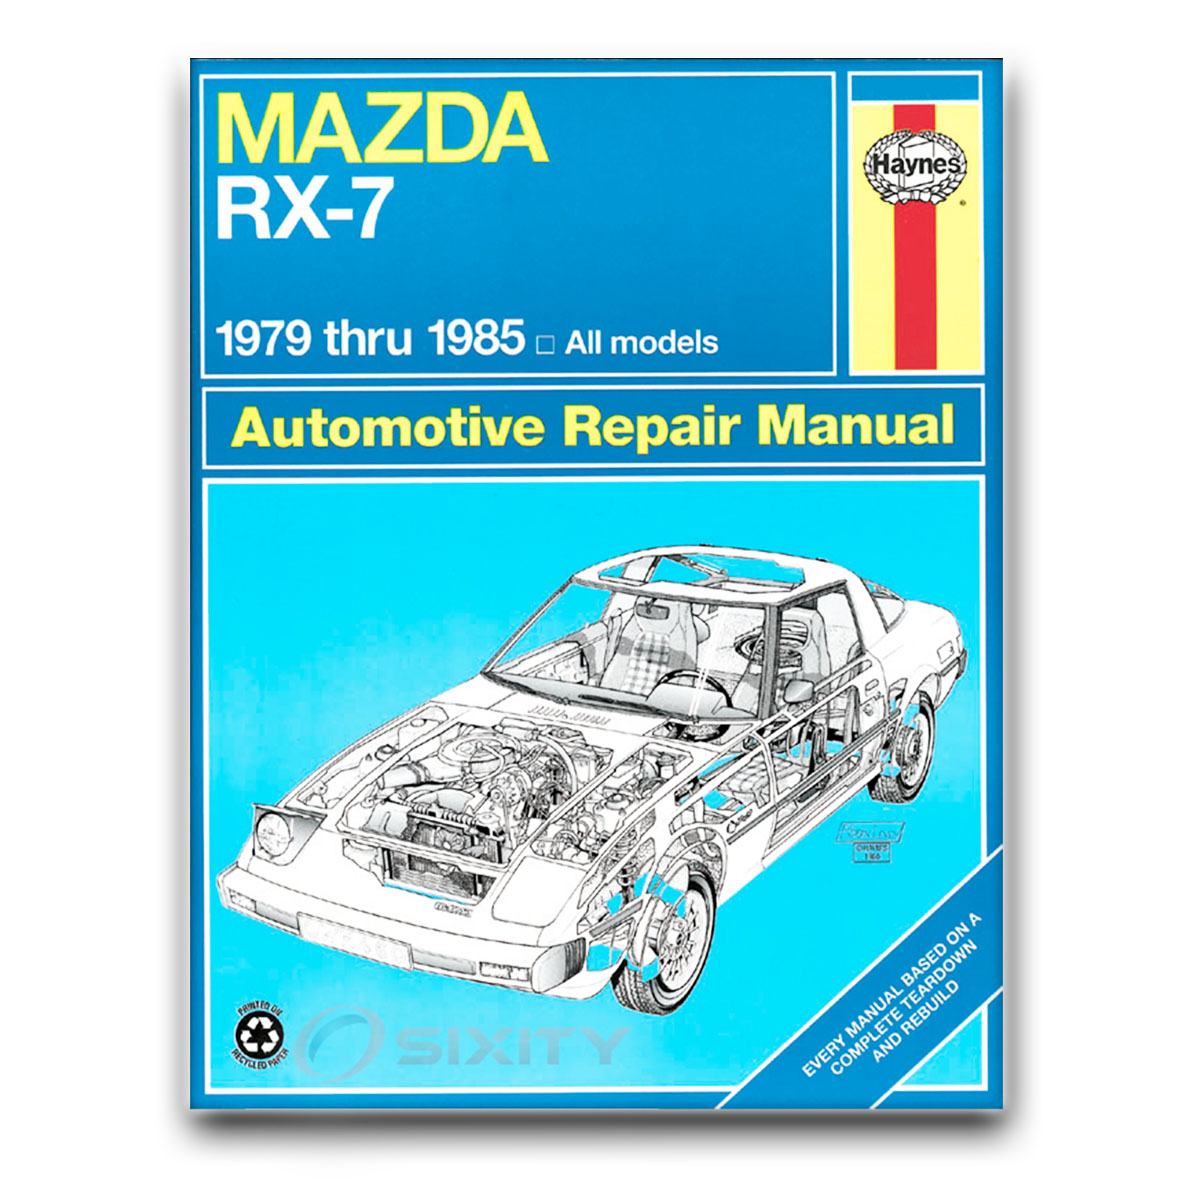 mazda rx 7 haynes repair manual gsl se limited edition shop service rh ebay com RX-7 Wallpaper RX-7 Wallpaper